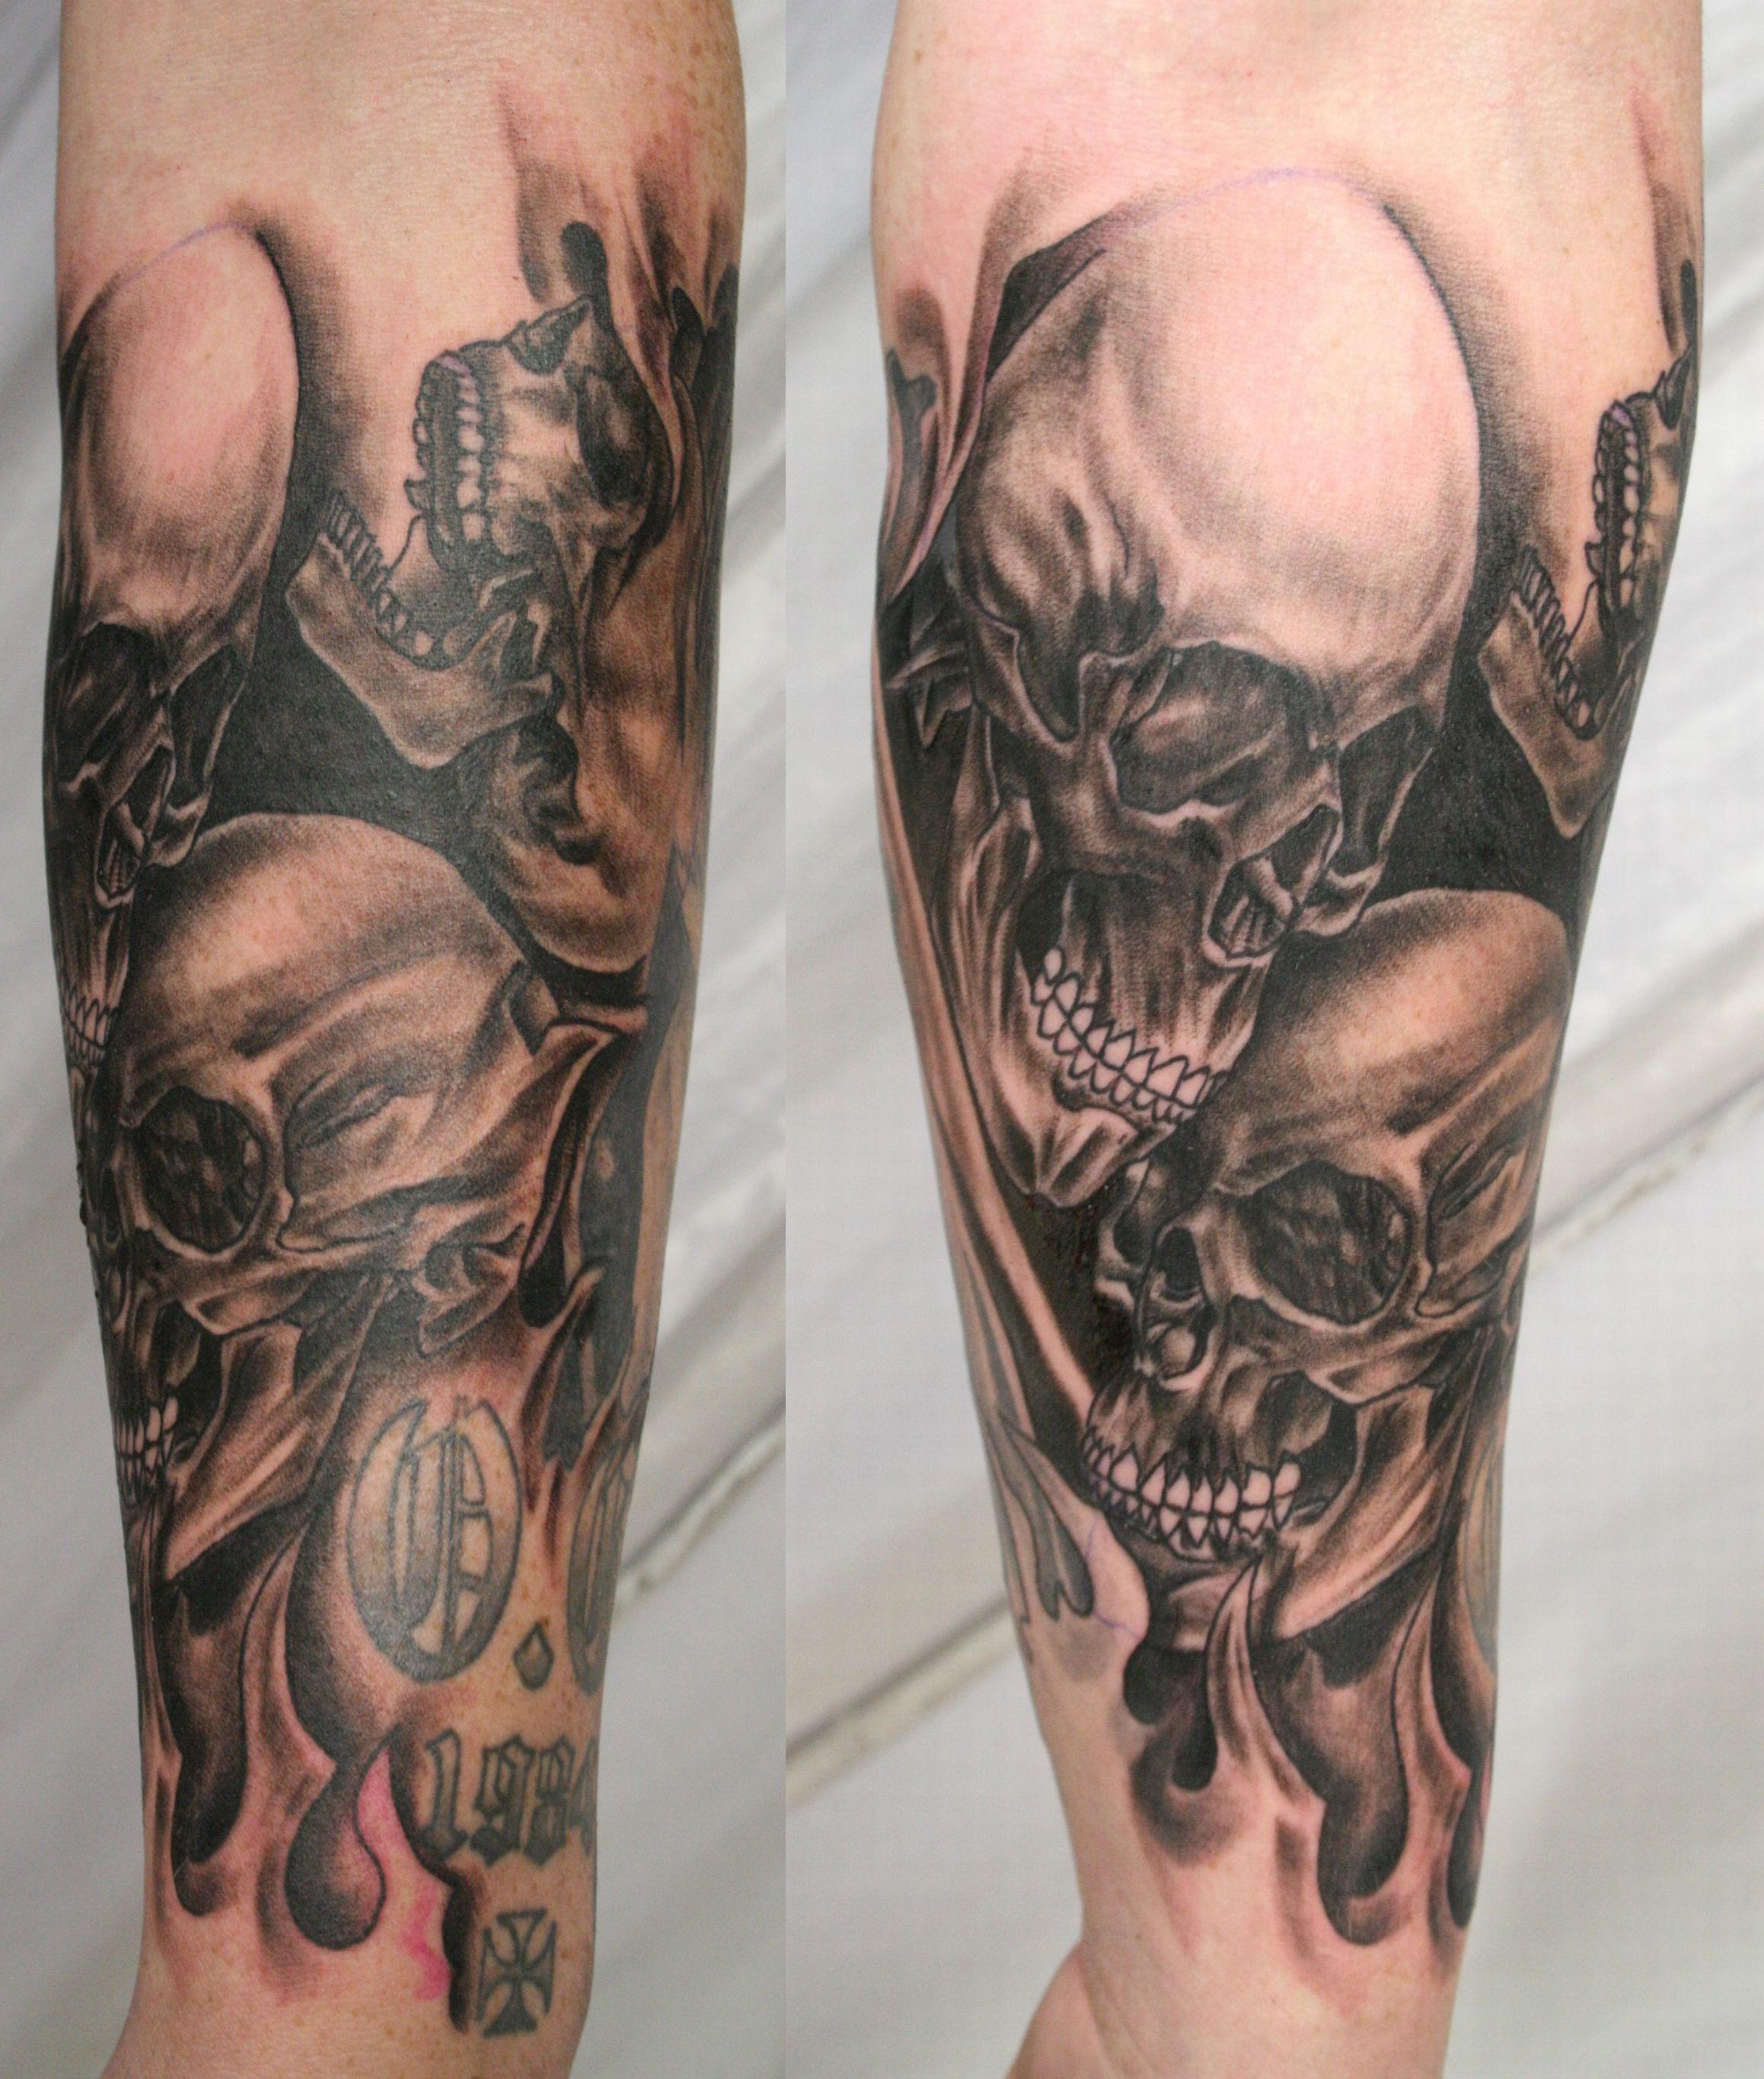 Skull tattoos designs ideas and meaning tattoos for you for Skull tattoos meaning